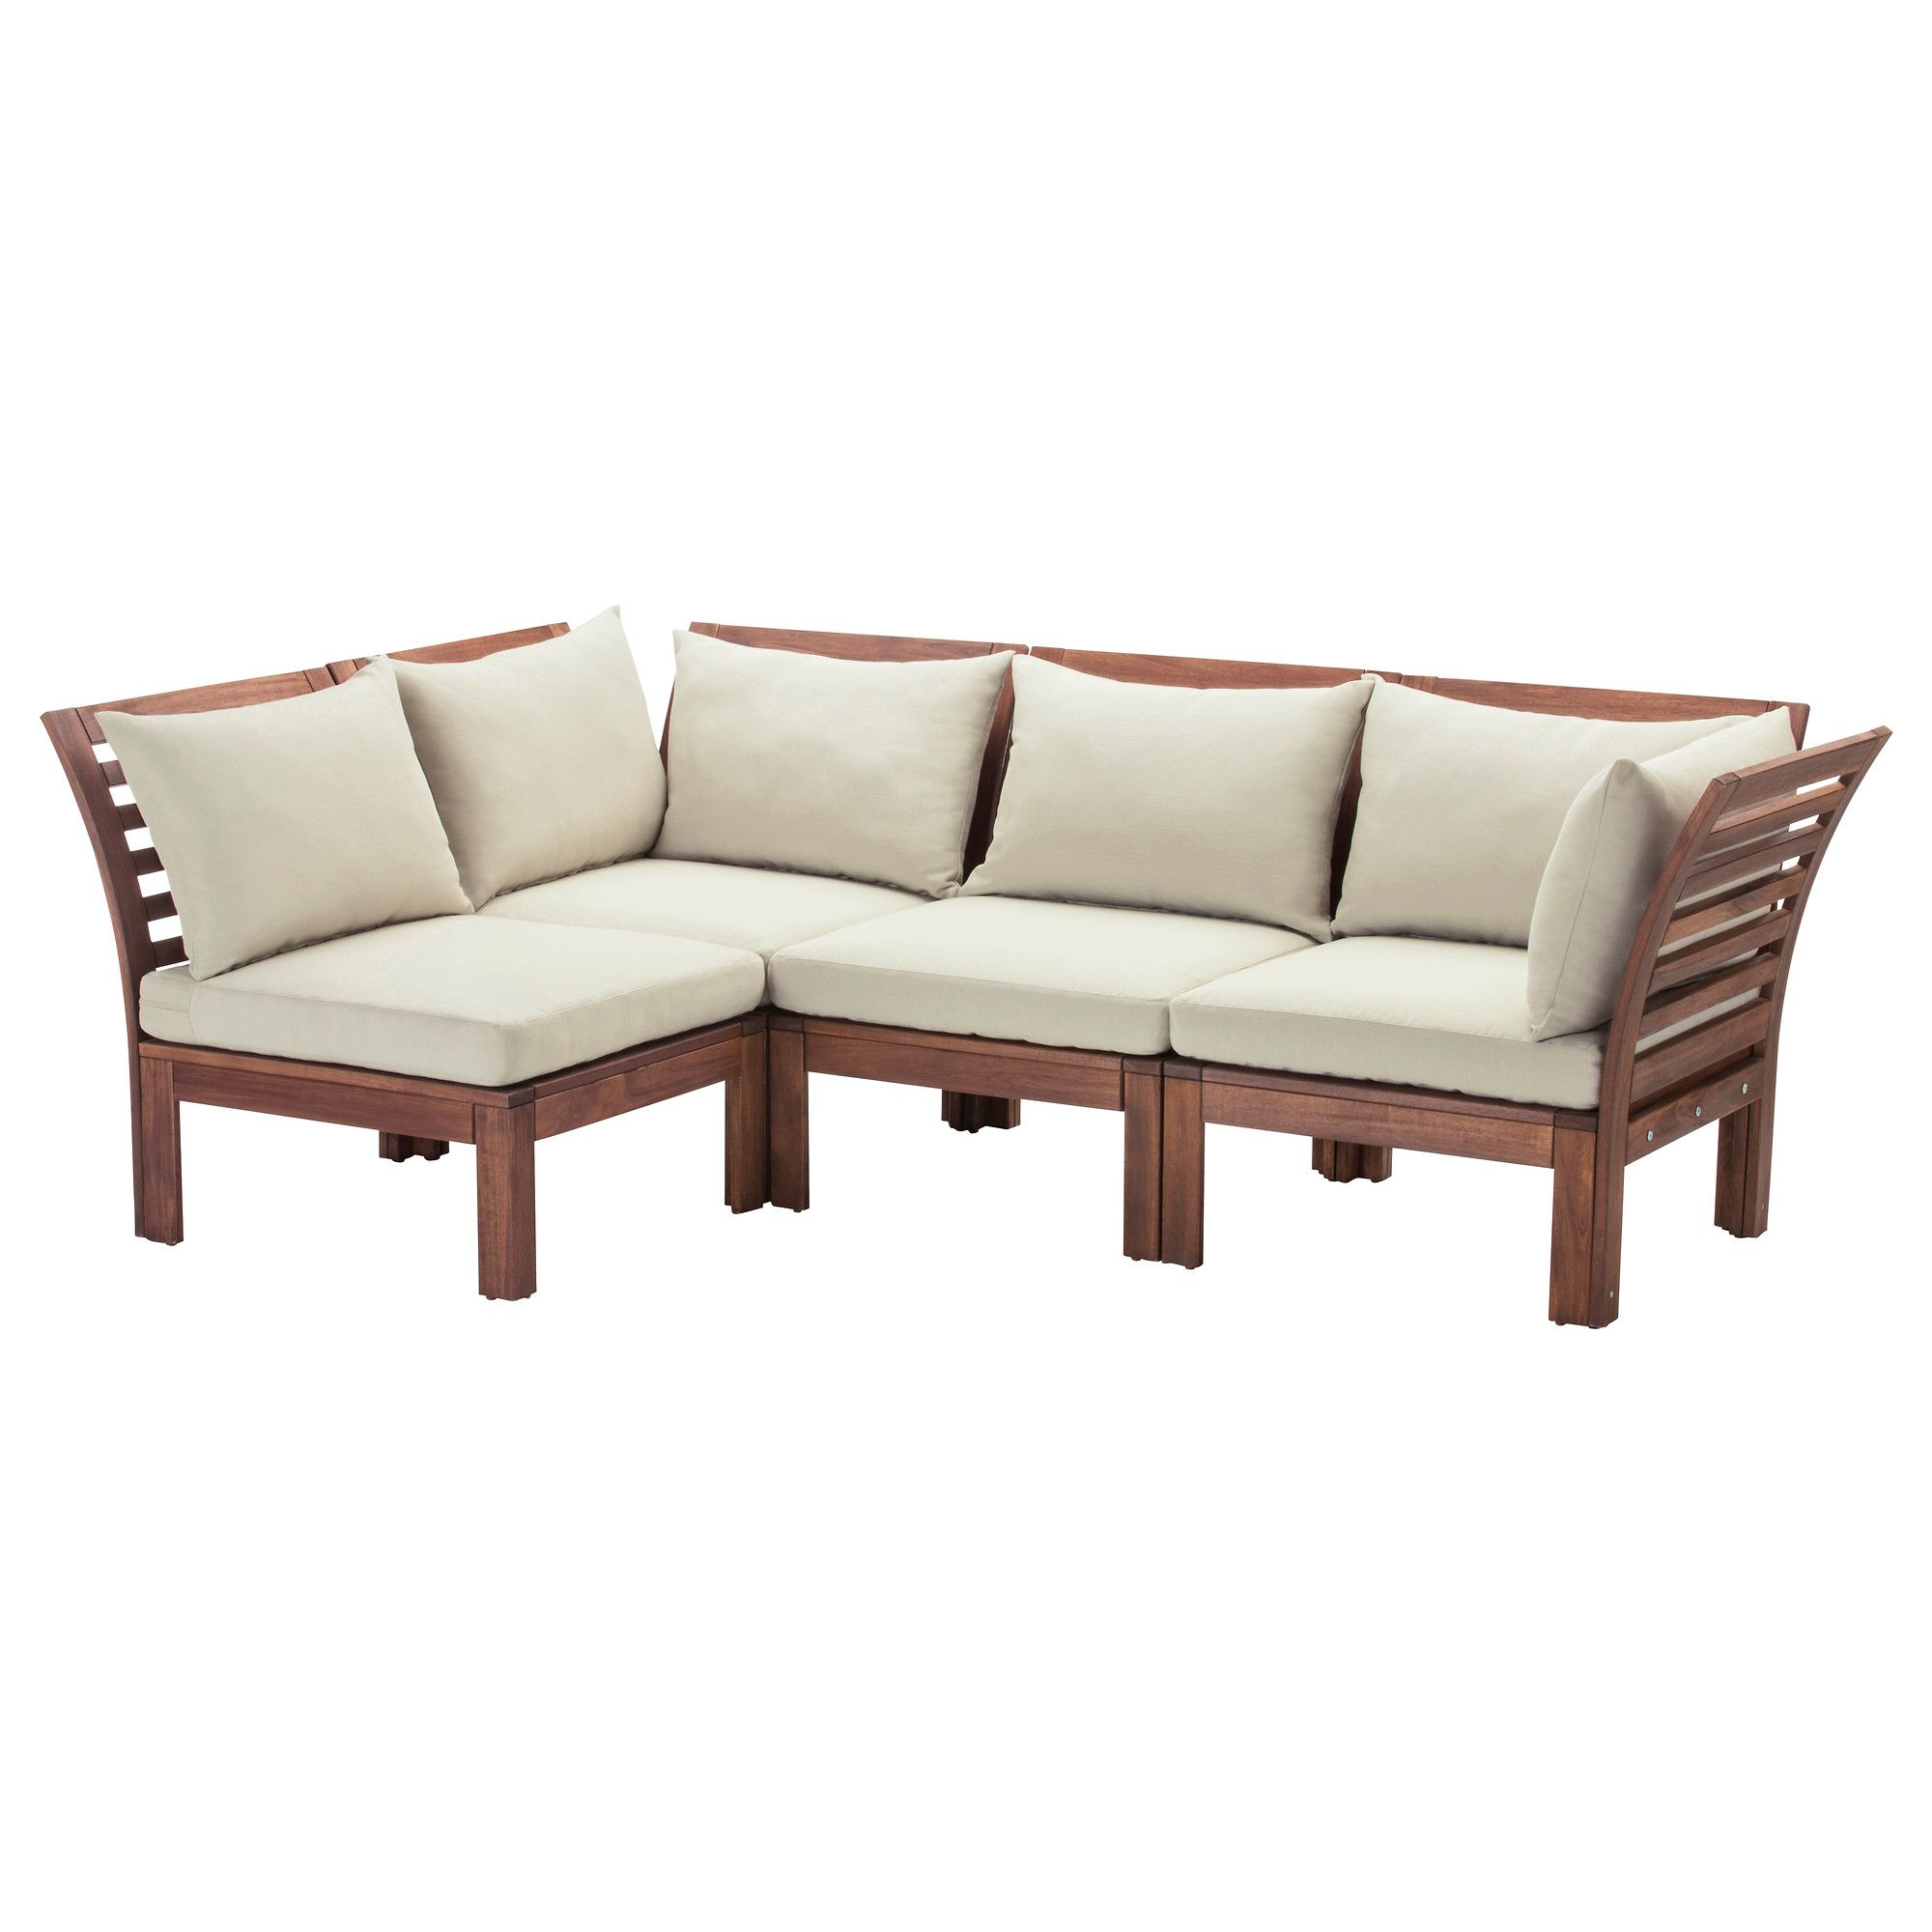 ÄPPLARÖ 4-seat sectional, outdoor, brown brown stained, Hållö beige ...